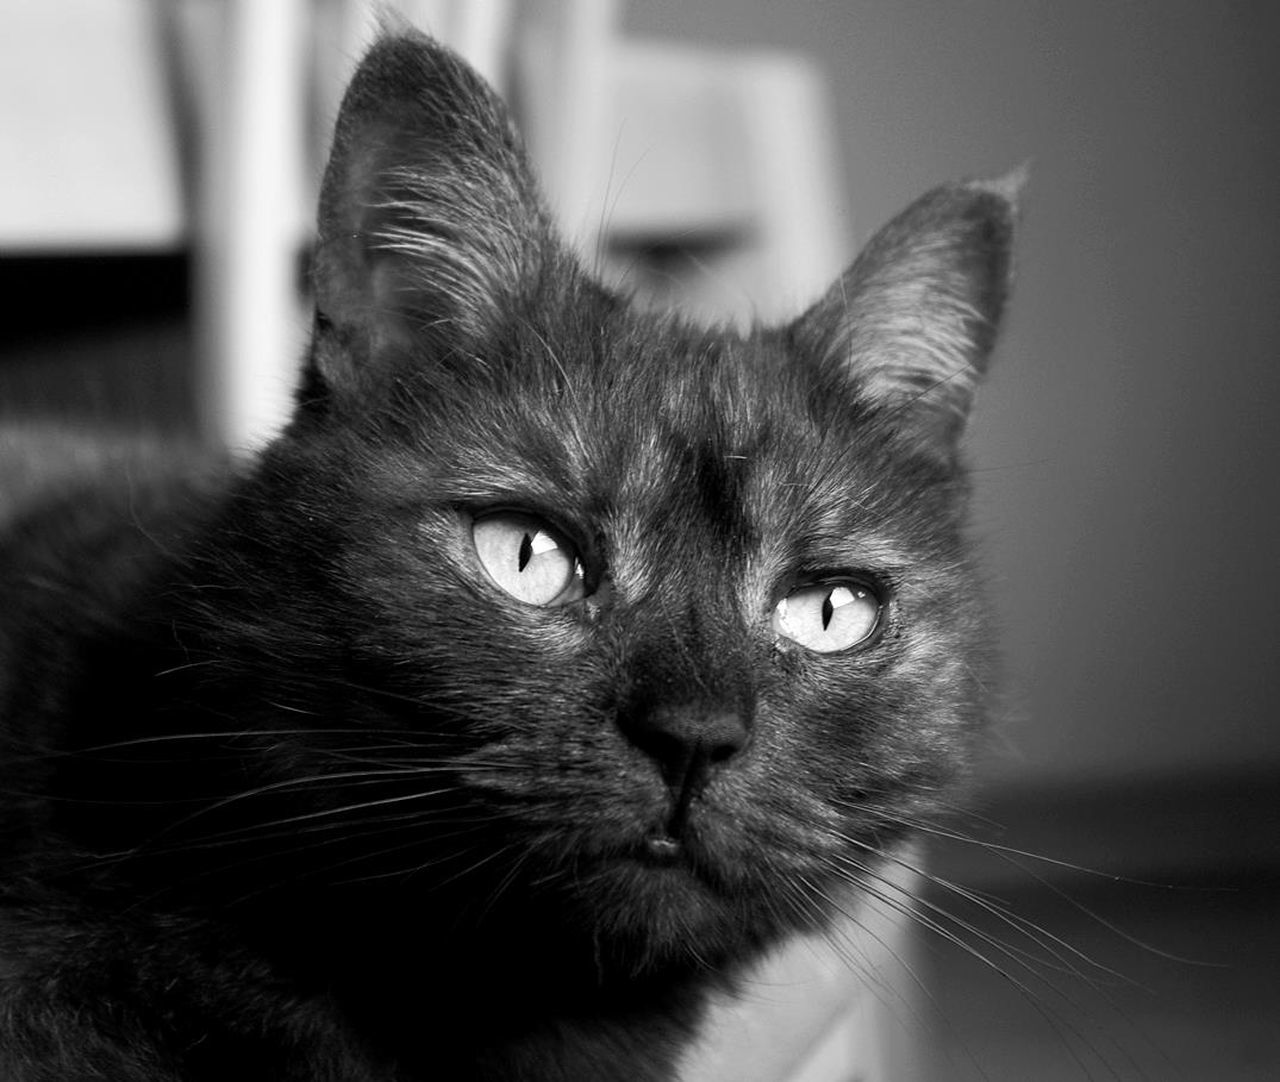 domestic cat, one animal, animal themes, pets, mammal, domestic animals, feline, whisker, indoors, close-up, home interior, focus on foreground, no people, looking at camera, portrait, day